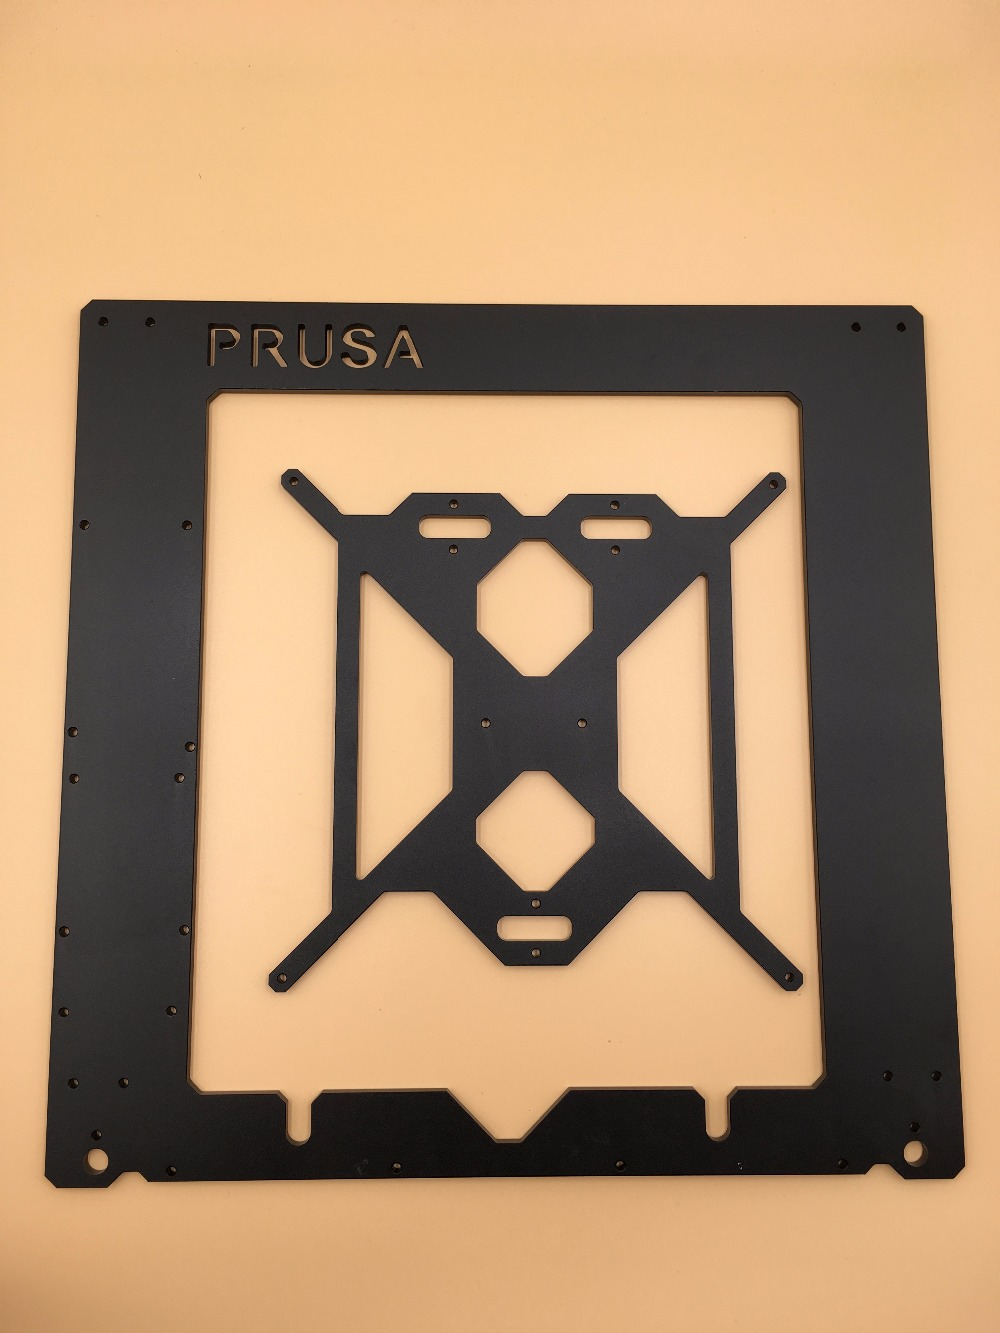 RepRap Prusa i3 frame kit Rework 3D printer aluminum  alloy made  upgraded 3D Printer DIY 6 mm Anodized oxidation букет букет фантазия